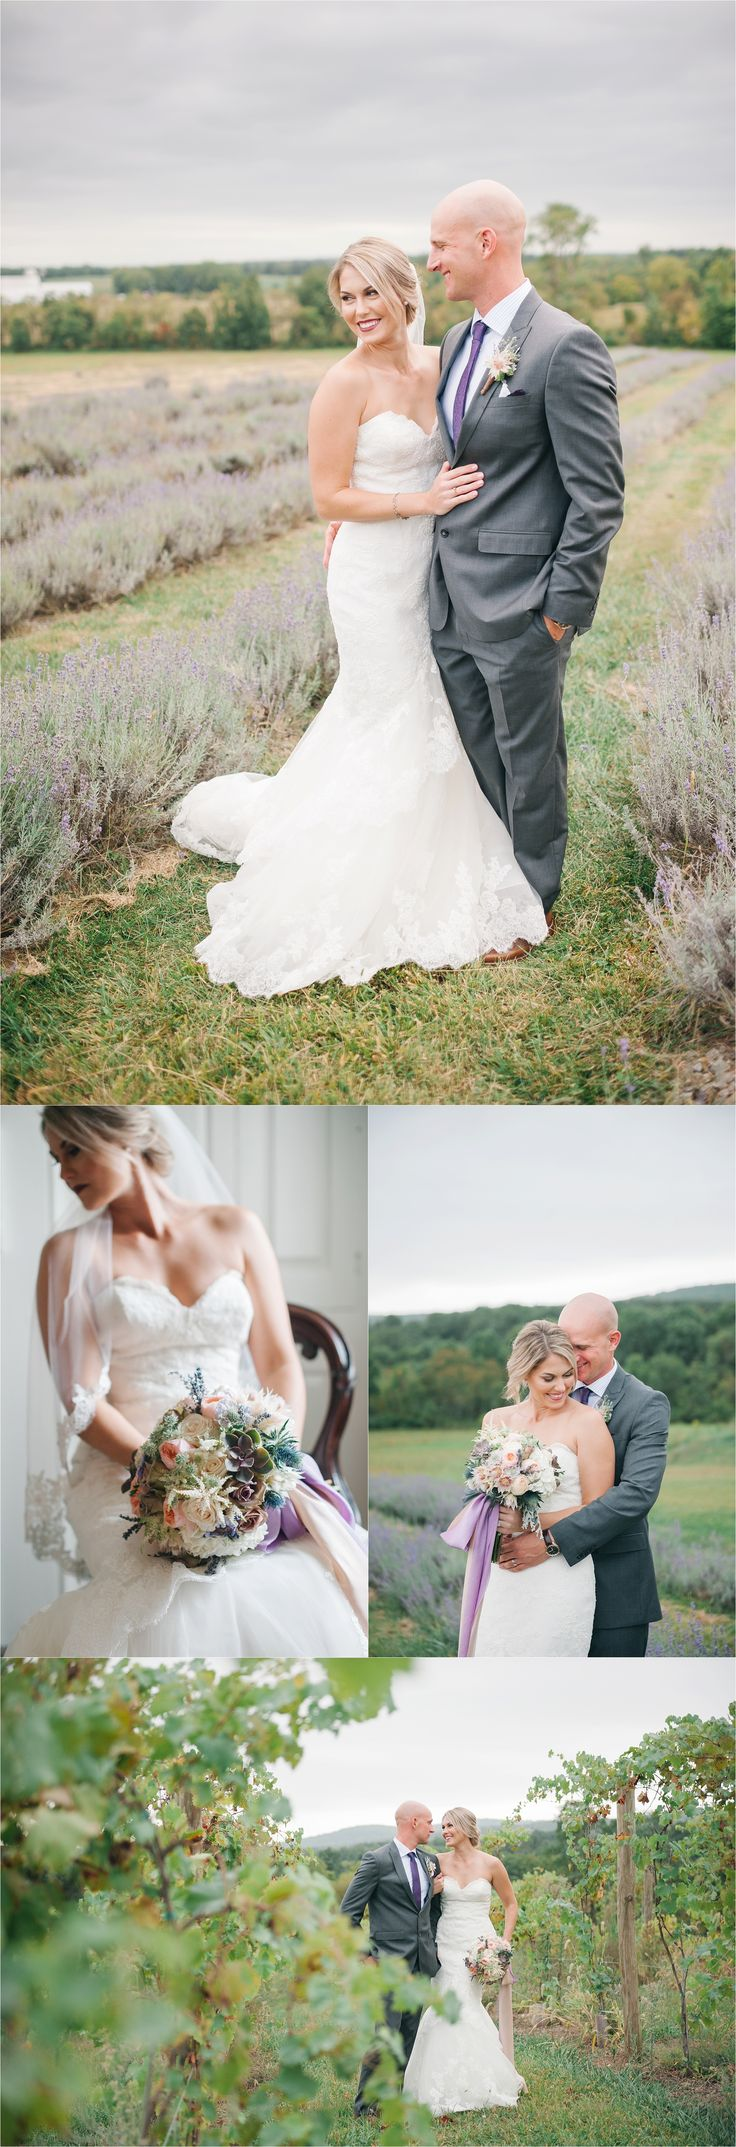 Springfield Manor Winery and Distillery wedding | vineyard bride and groom | winery wedding | Amanda Adams Photography | lavender fields